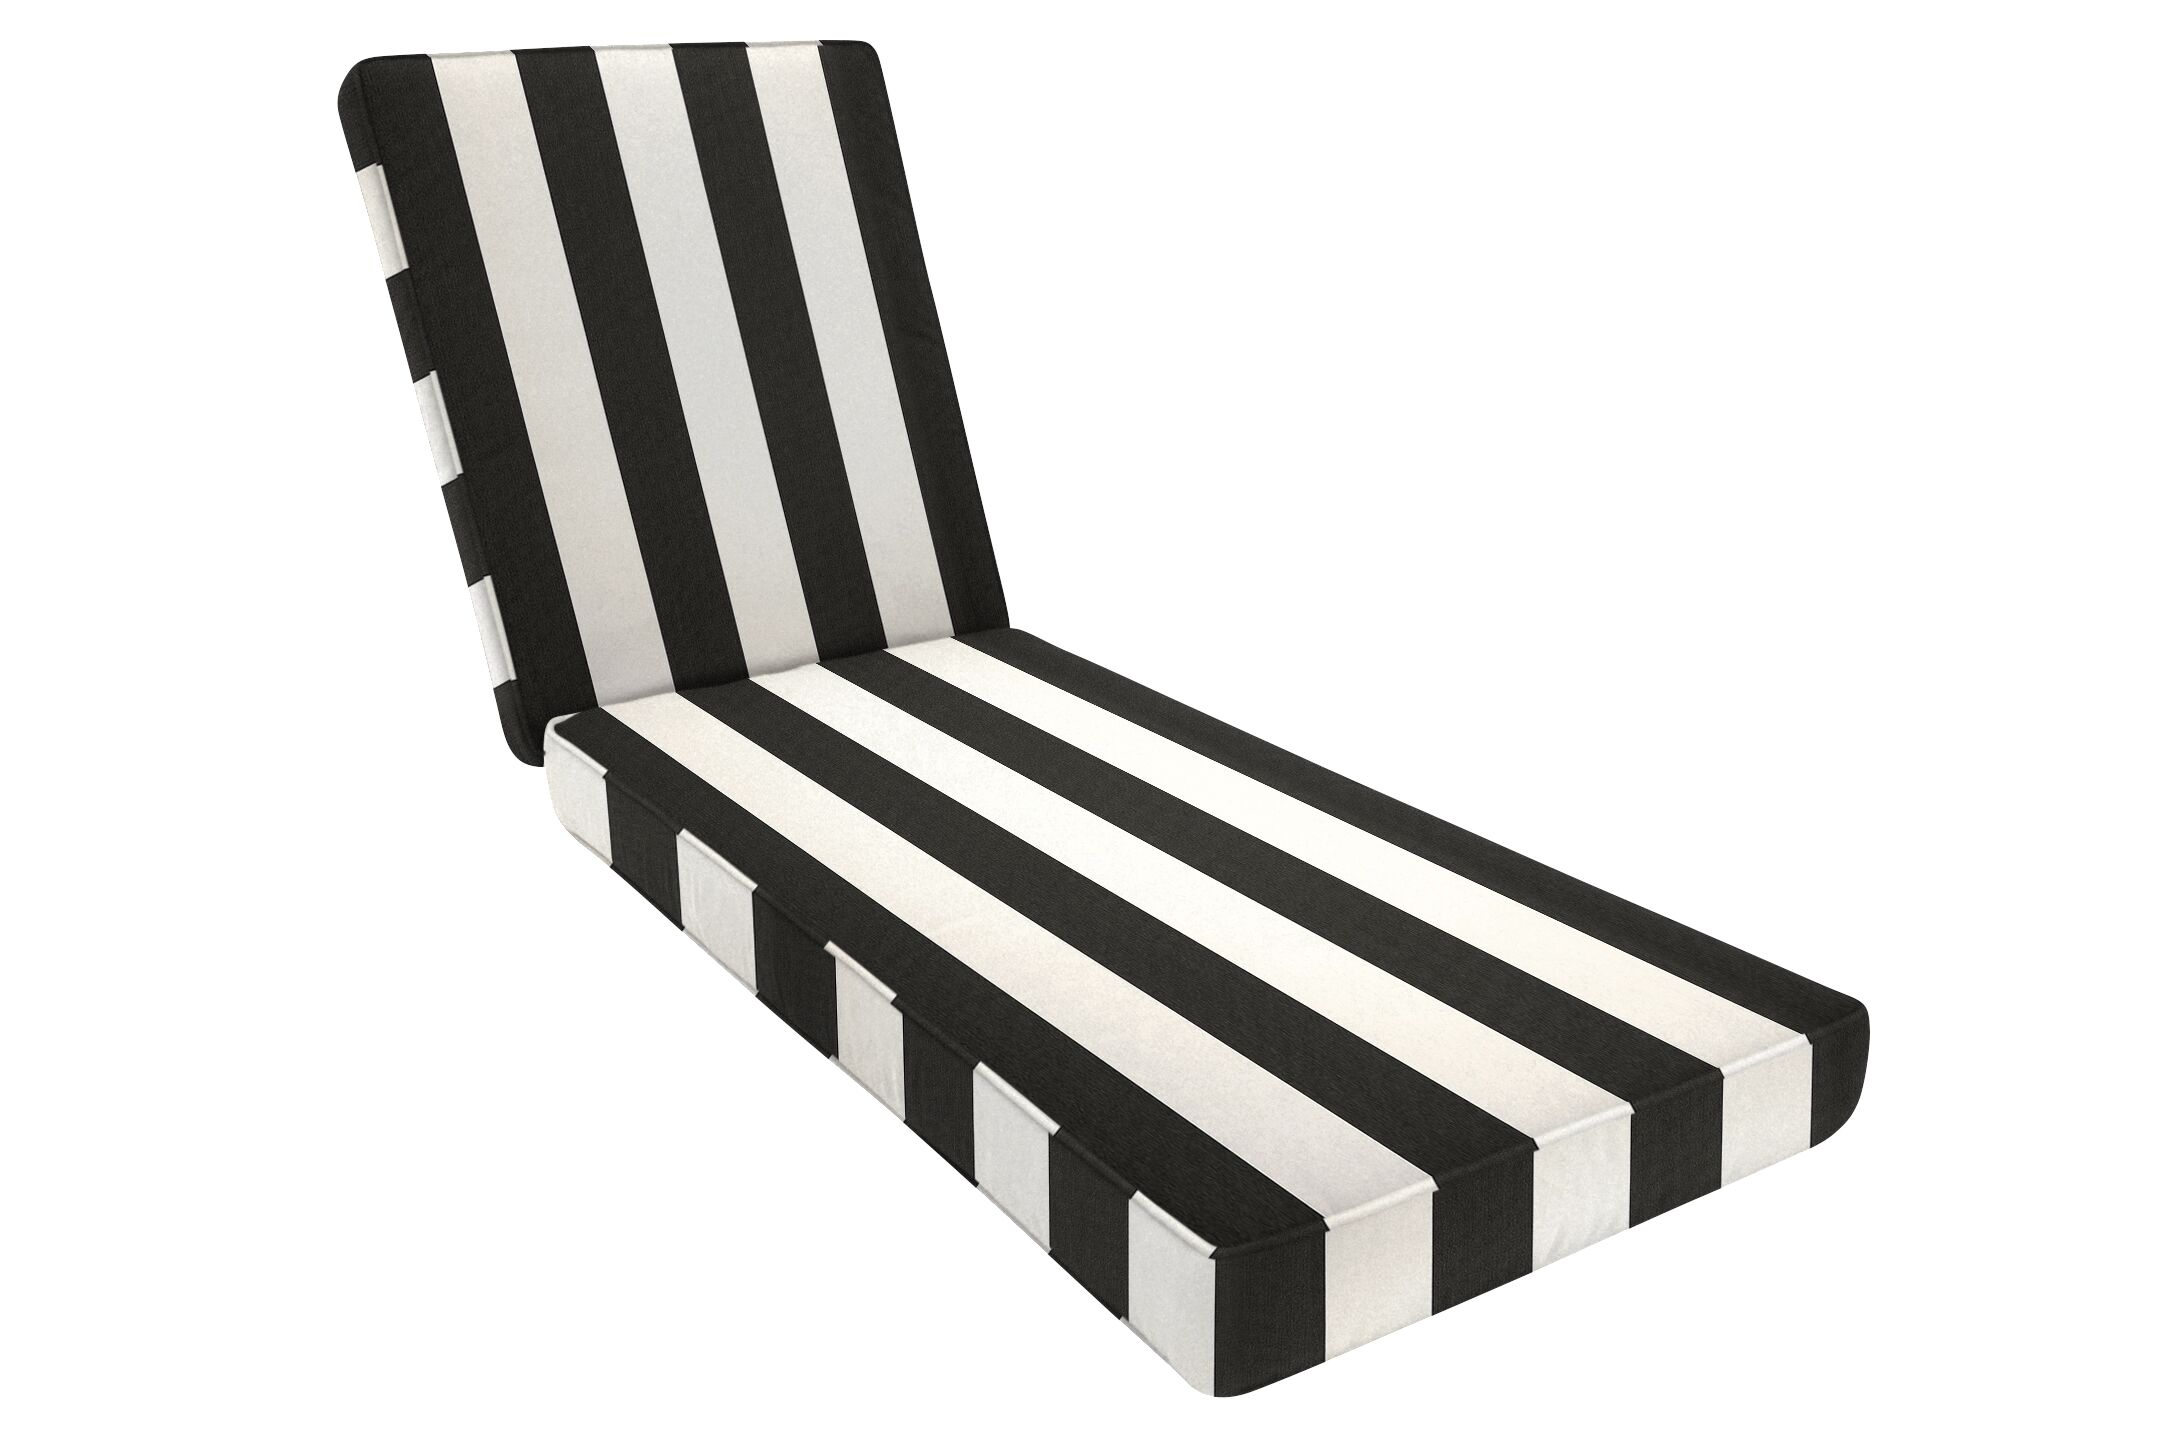 Removable Double-Piped Indoor/Outdoor Sunbrella Chaise Seat Cushion